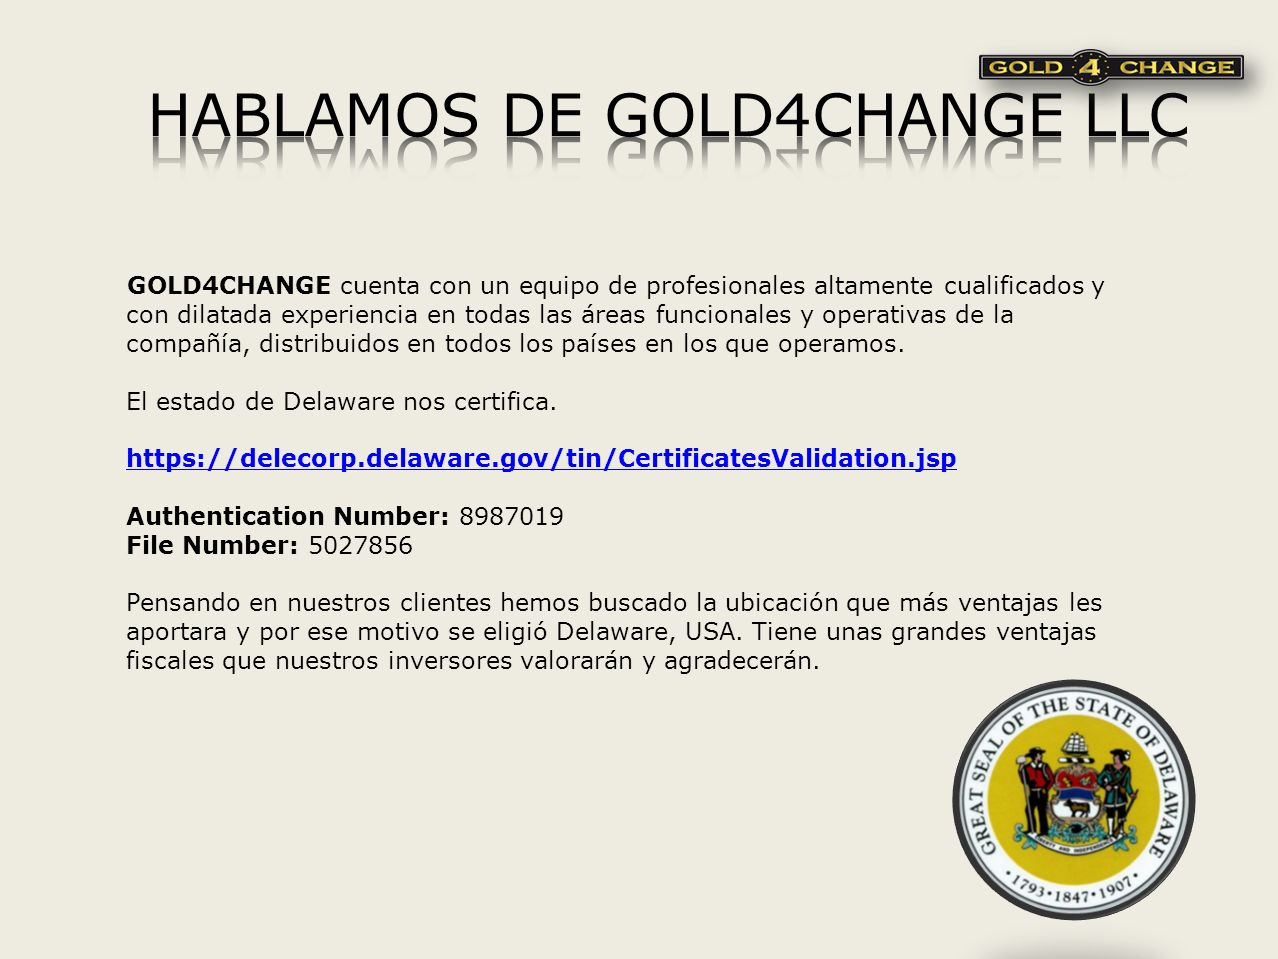 HABLAMOS DE GOLD4CHANGE LLC